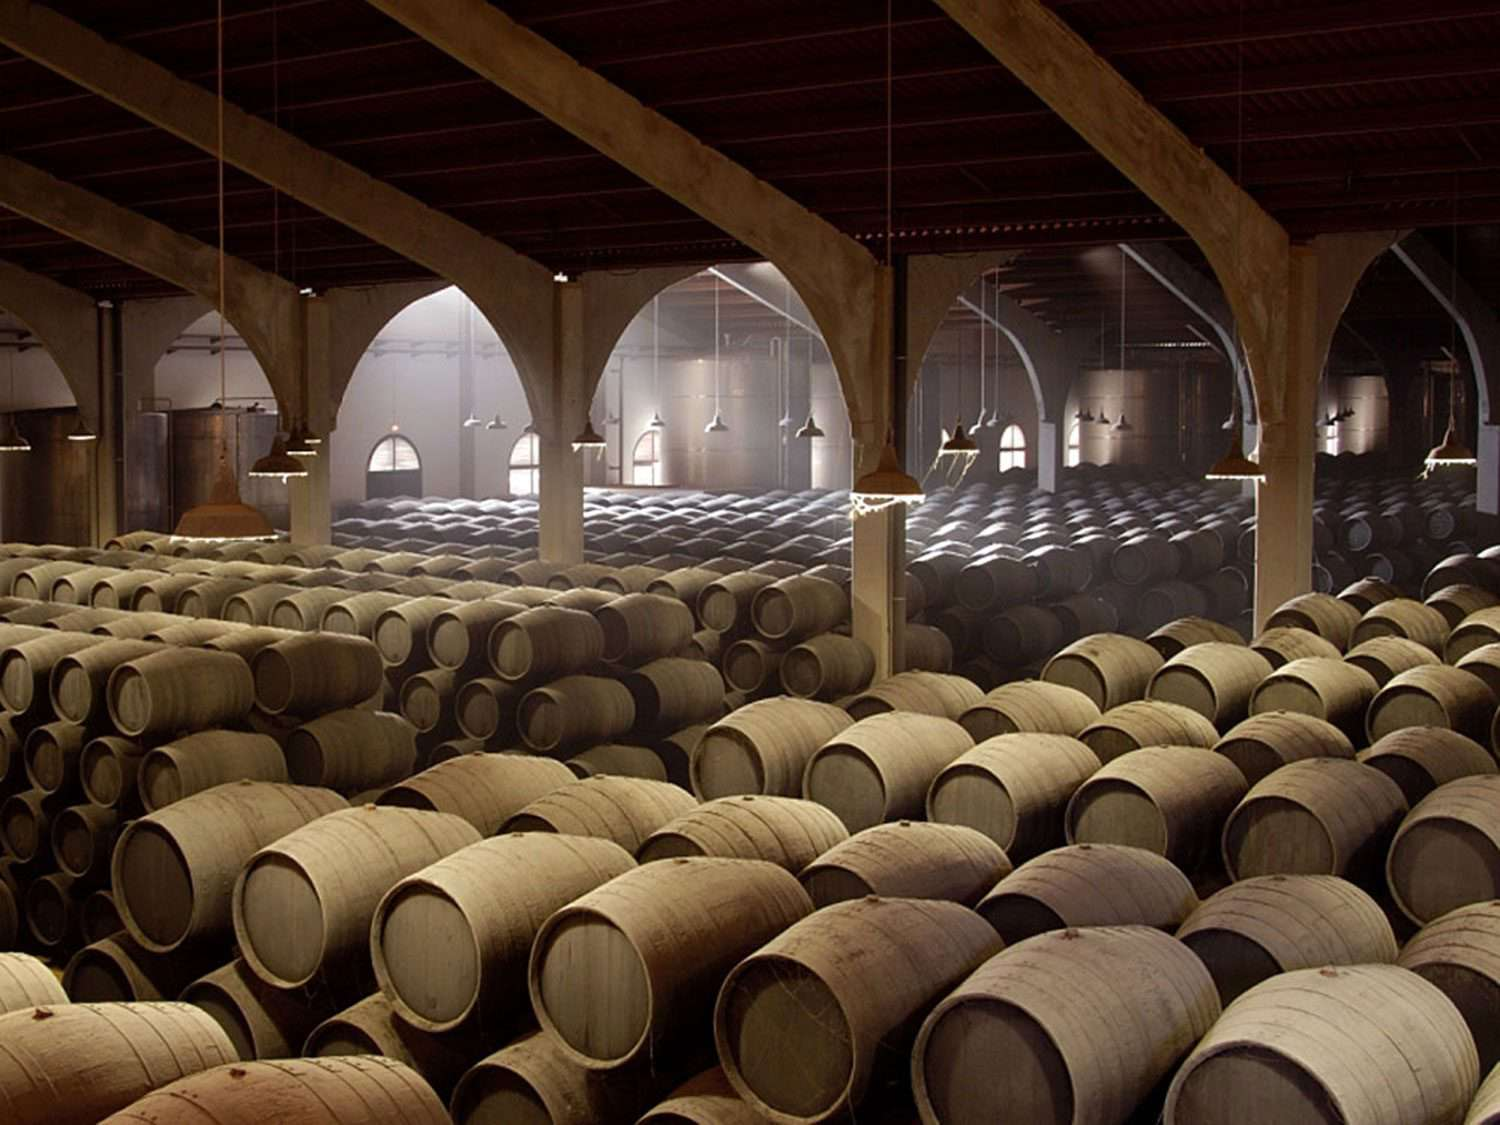 Solera system for aging sherry in Spain